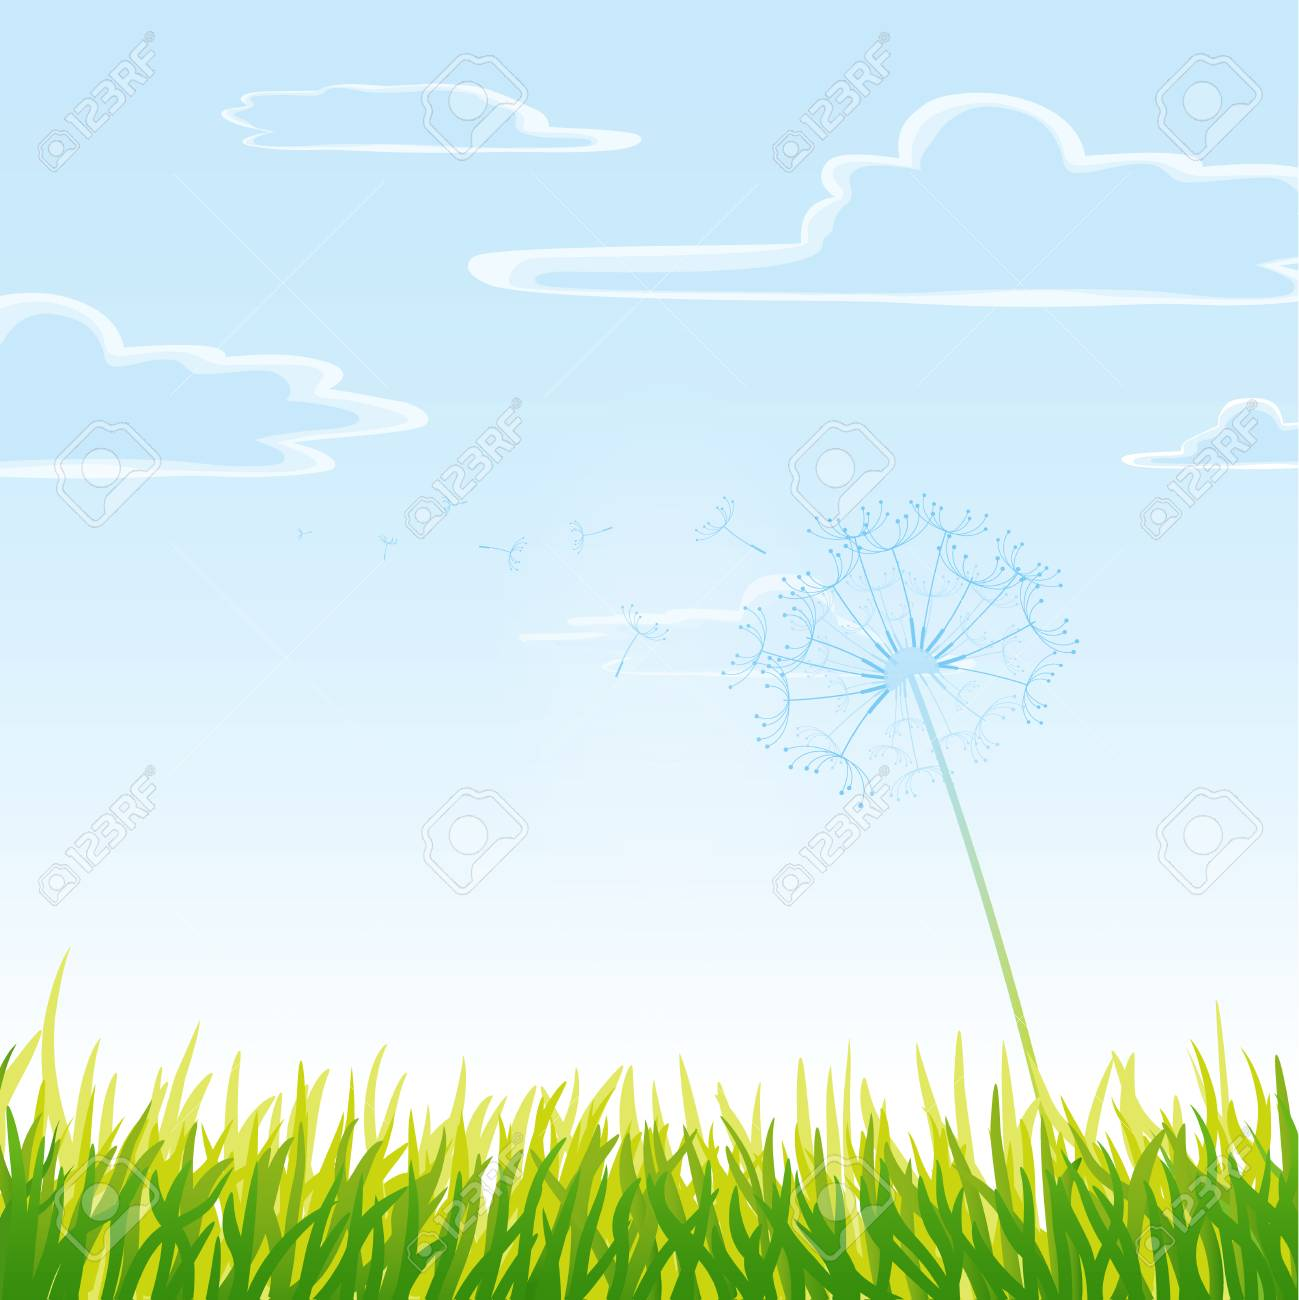 Meadow with cloudy sky. Stock Vector - 8829568